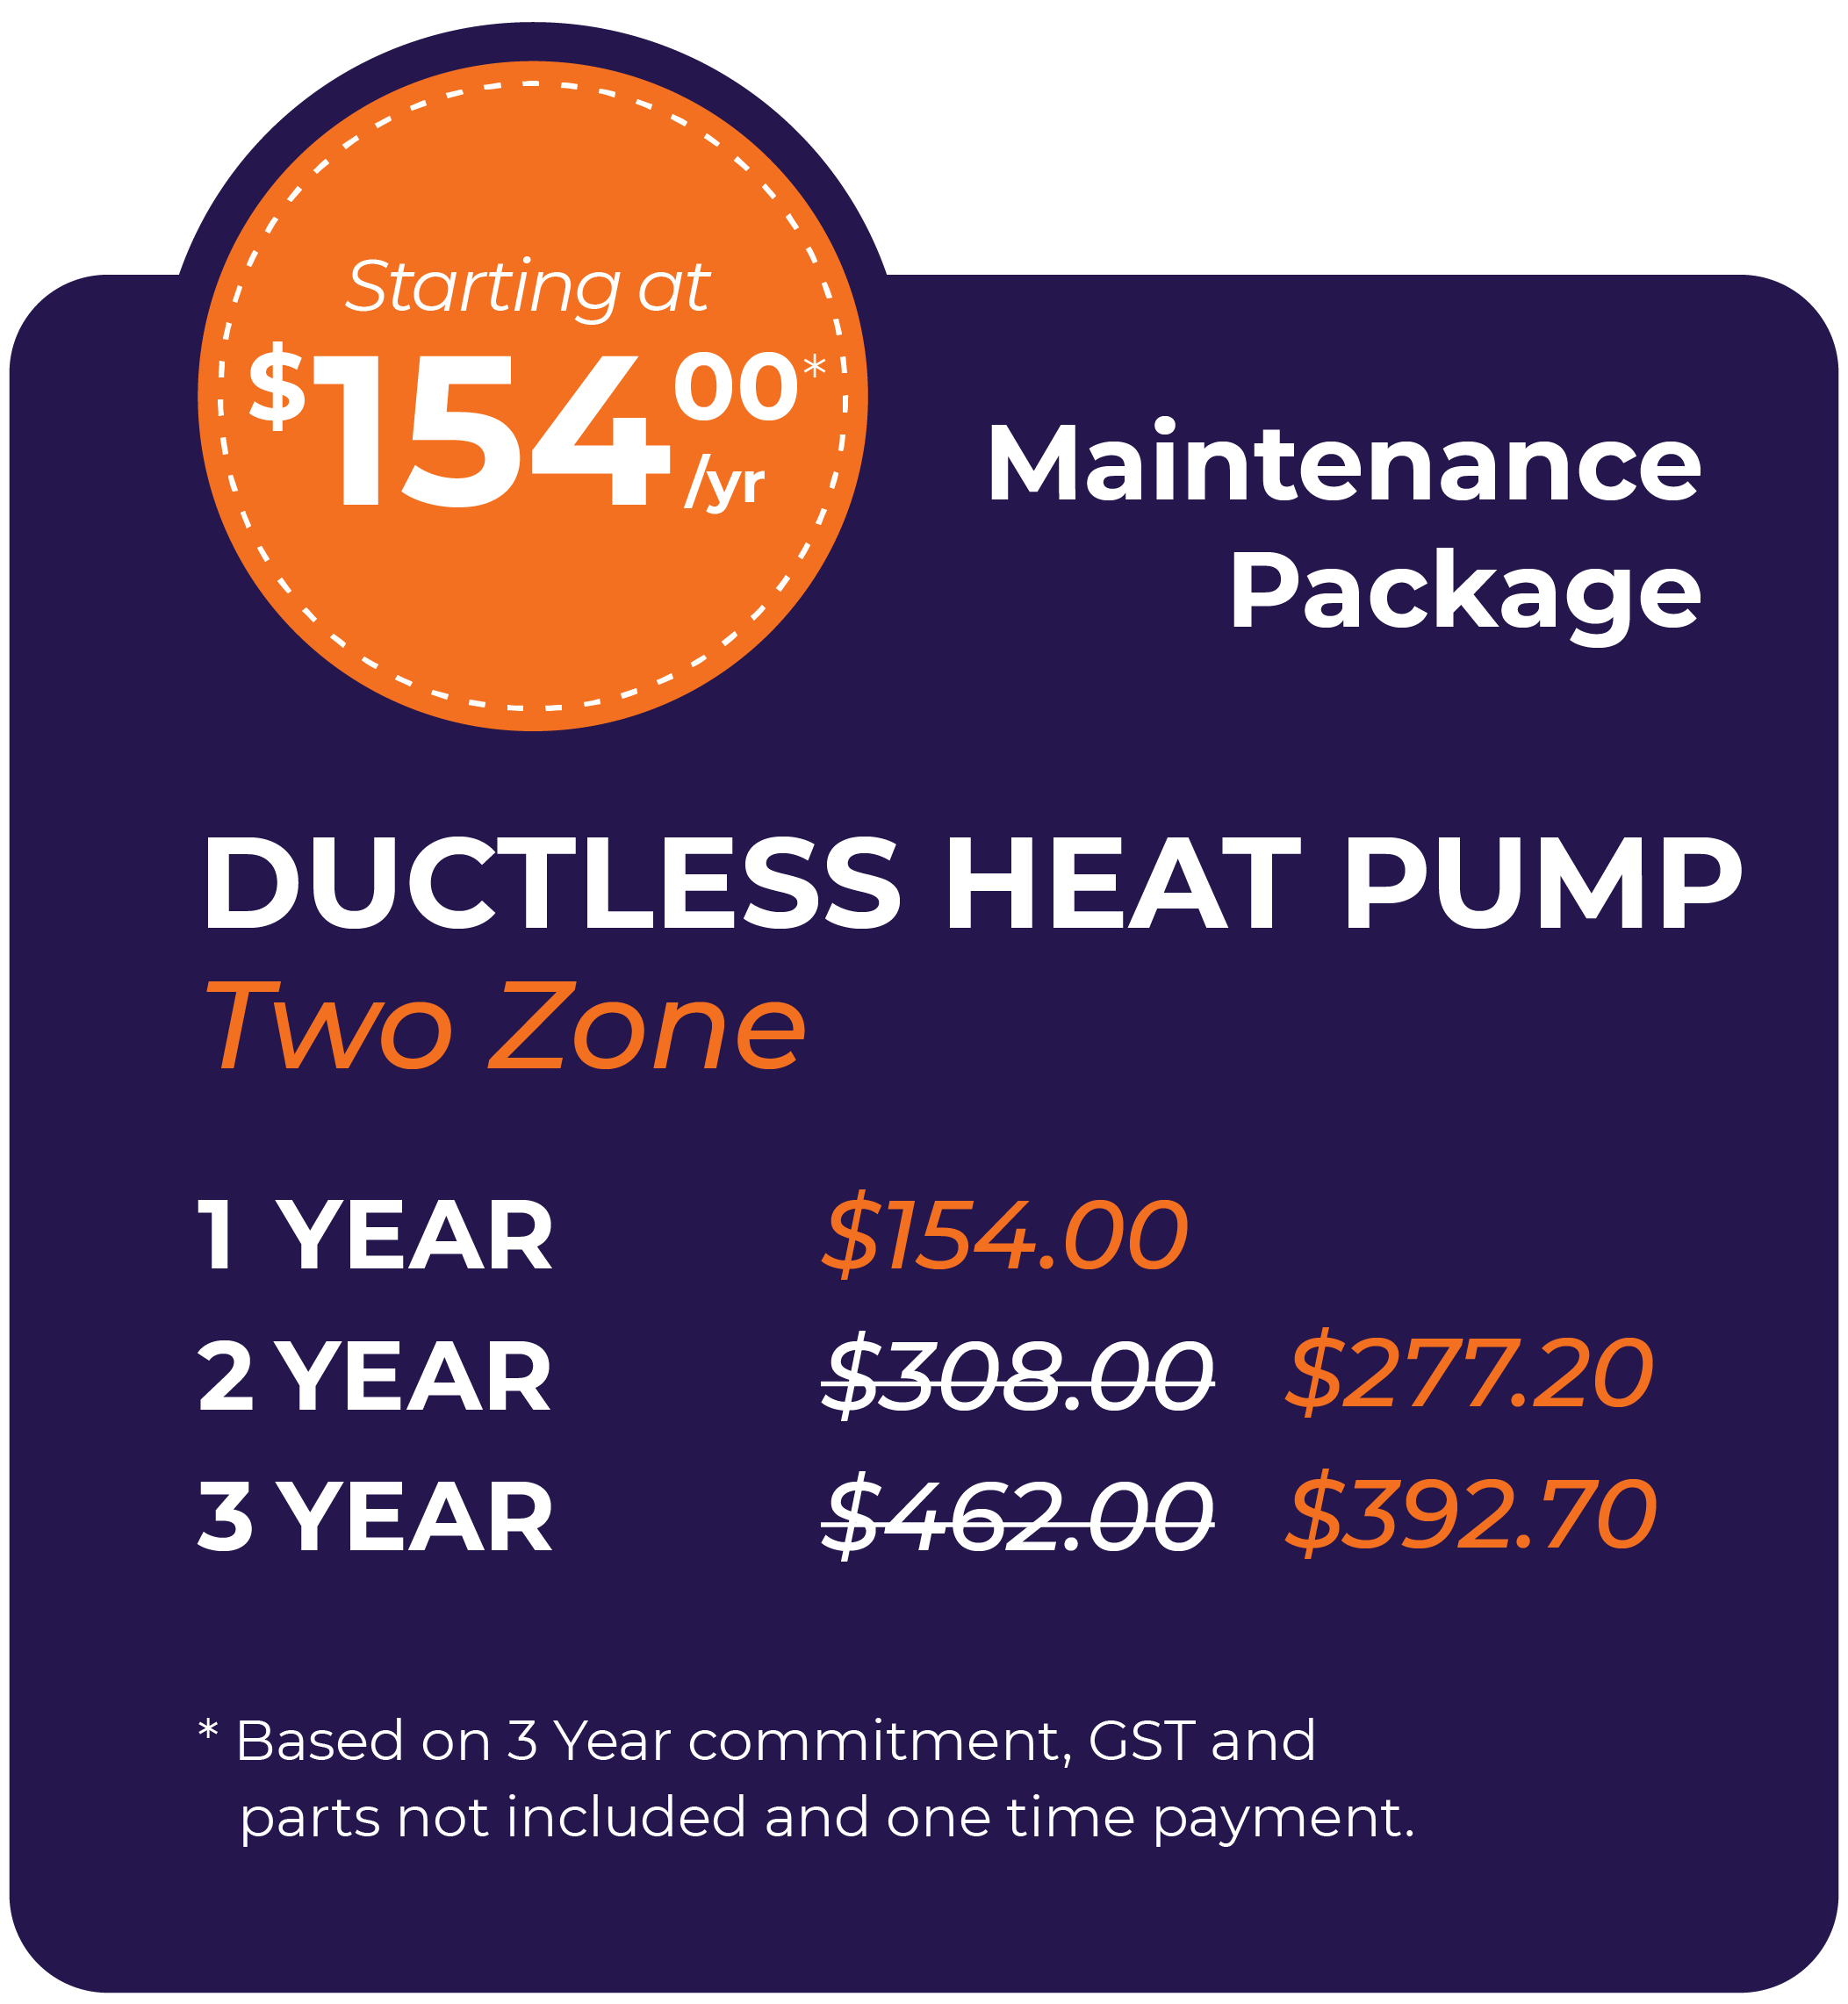 Ductless Heat Pump Two Zone Maintenance Package